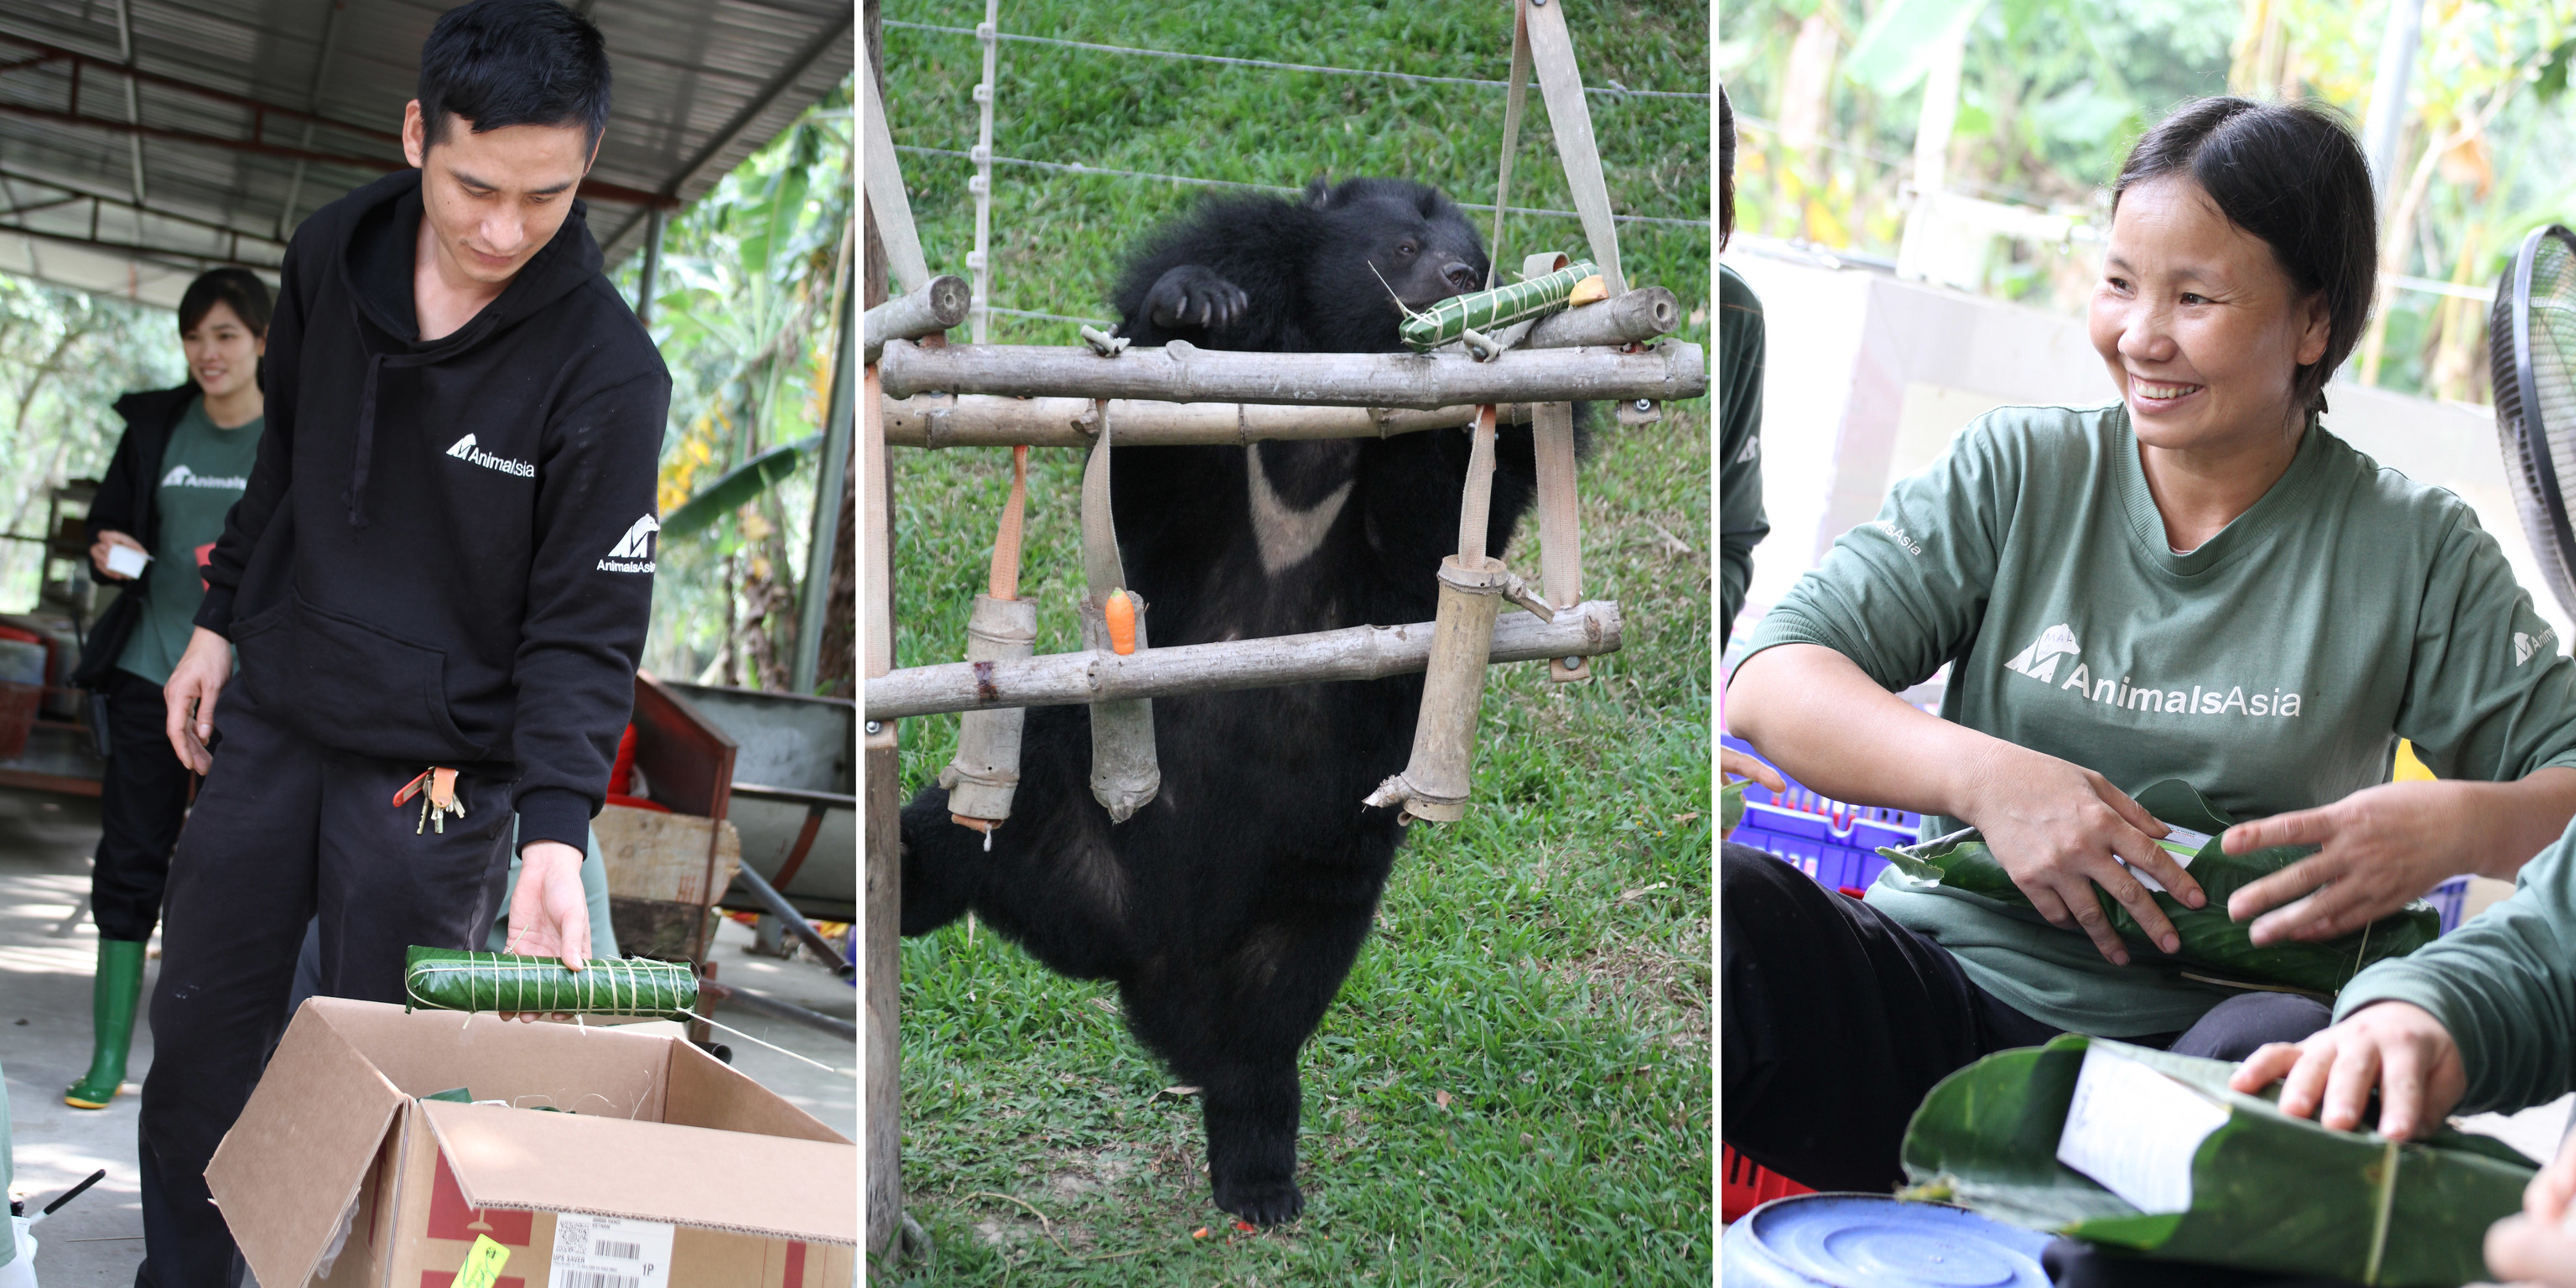 Bear team manager Chien, Bazan and bánh chưng being prepared